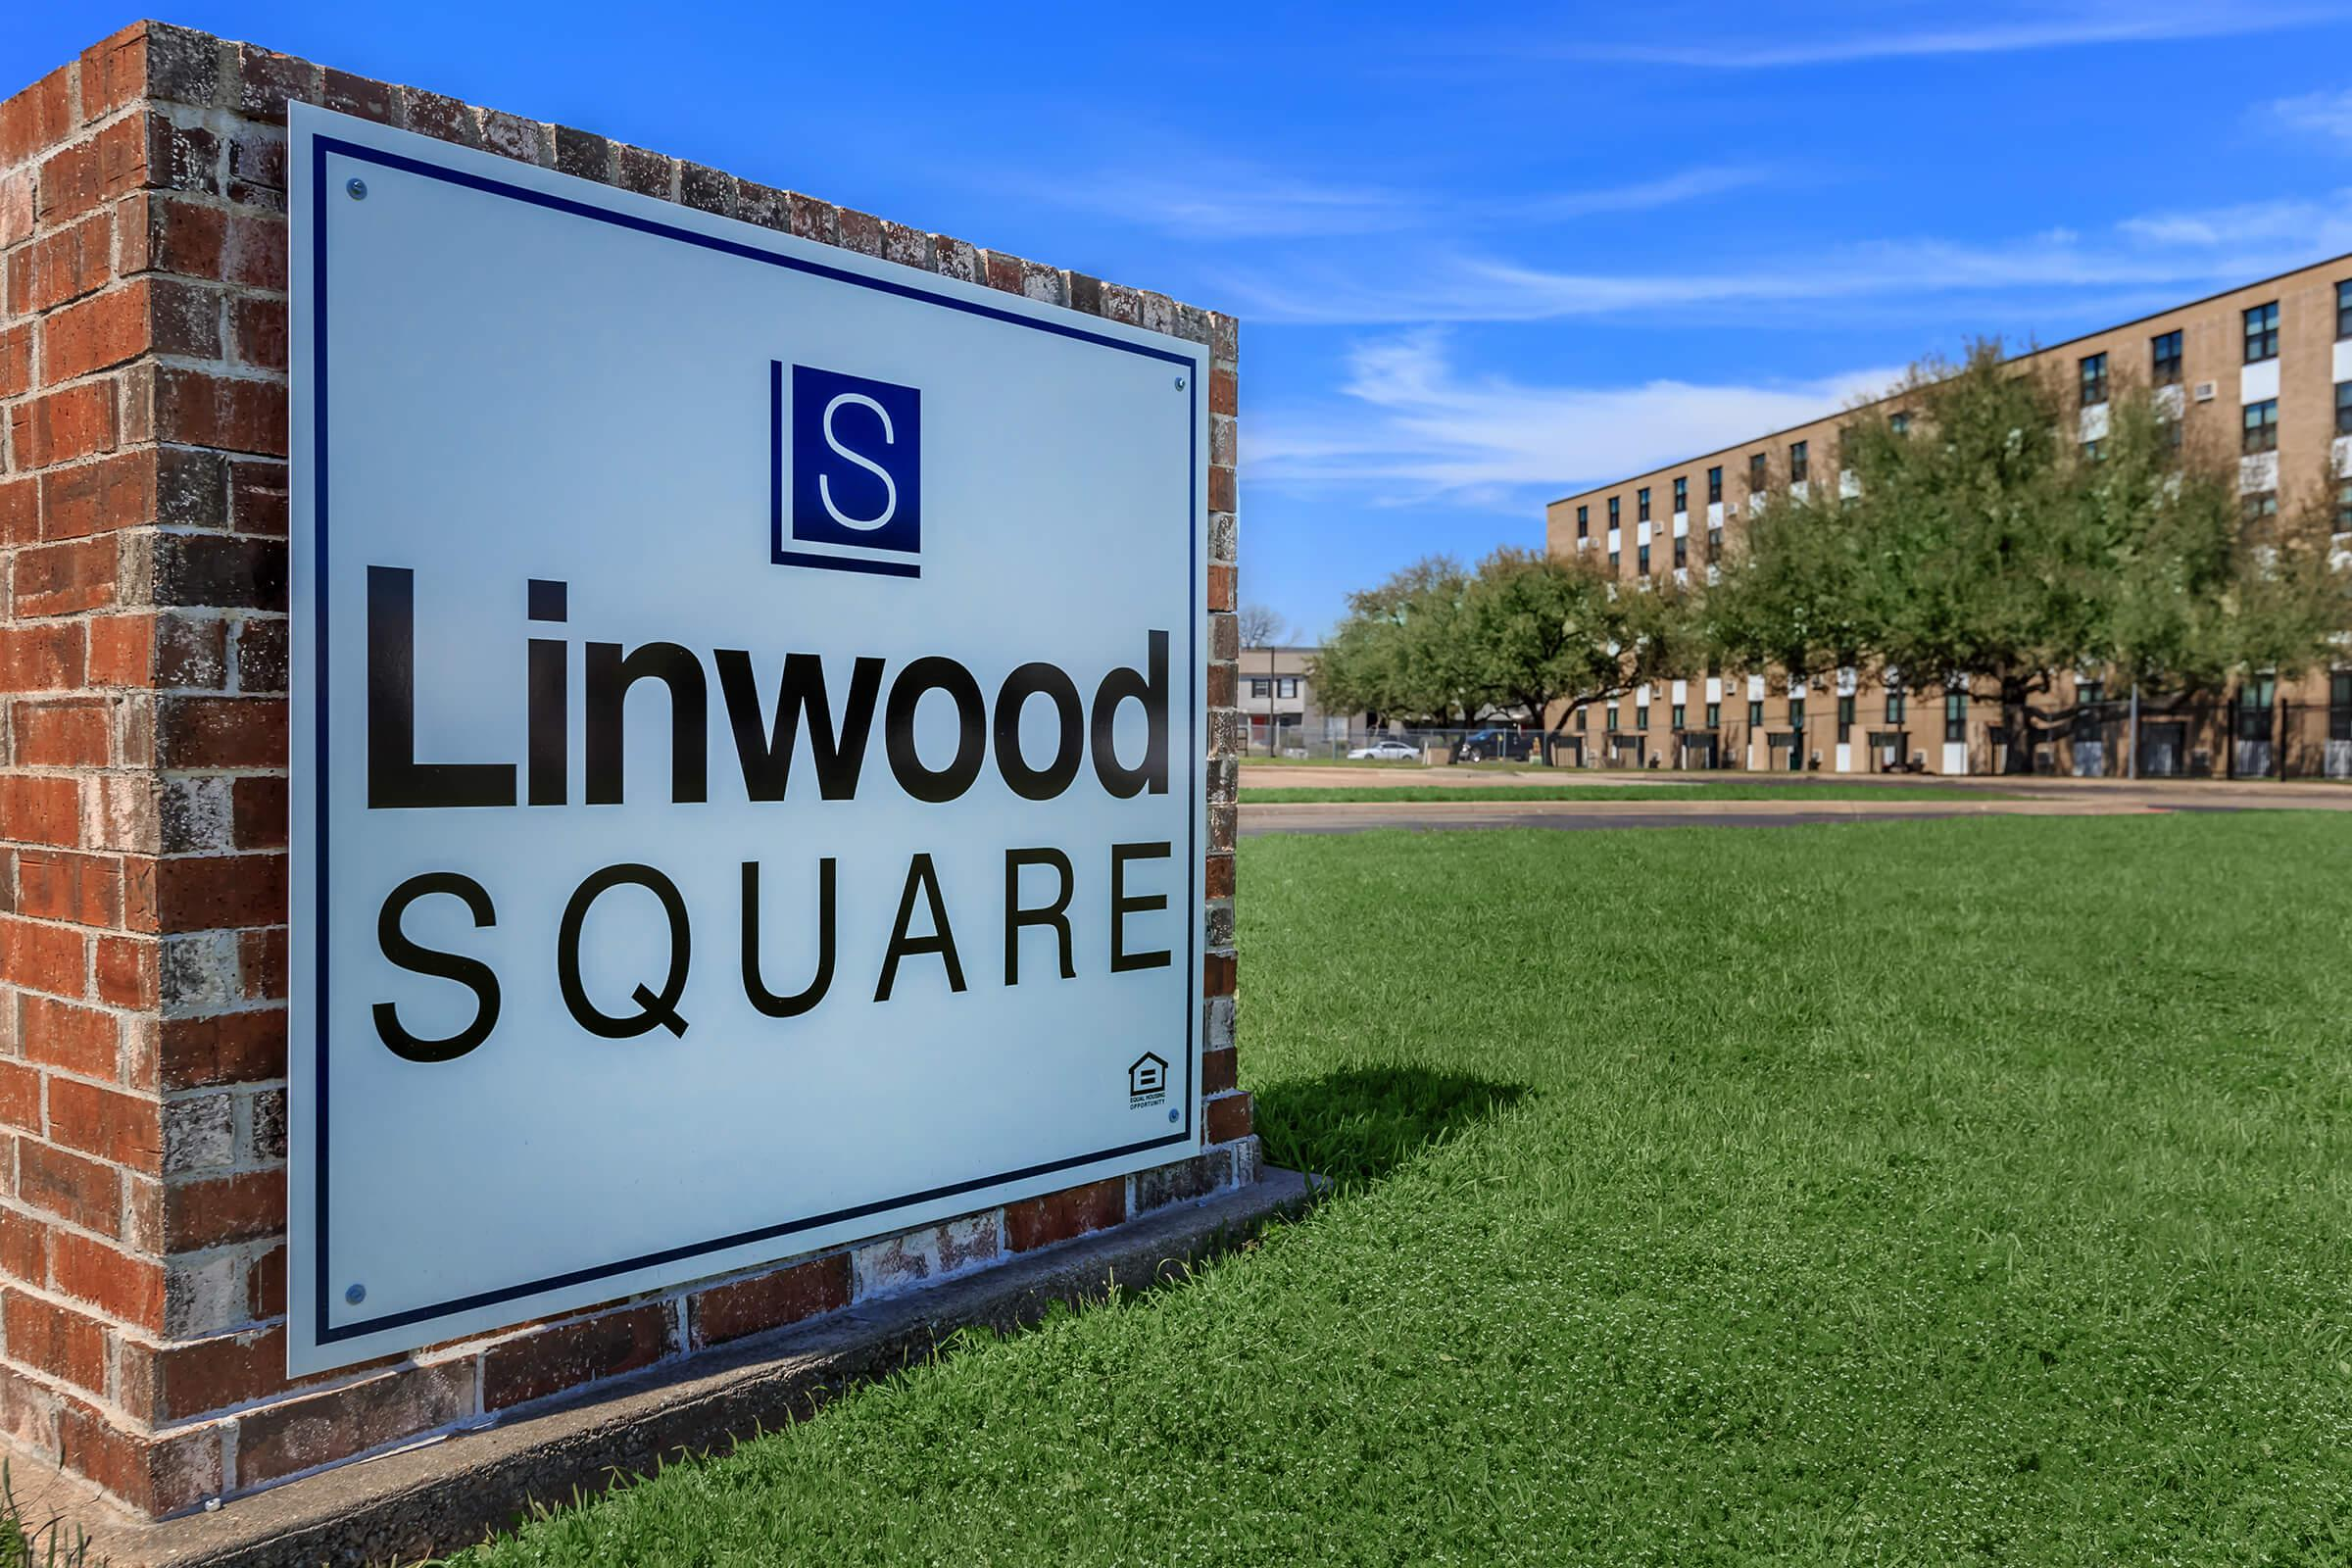 Image of Linwood Square